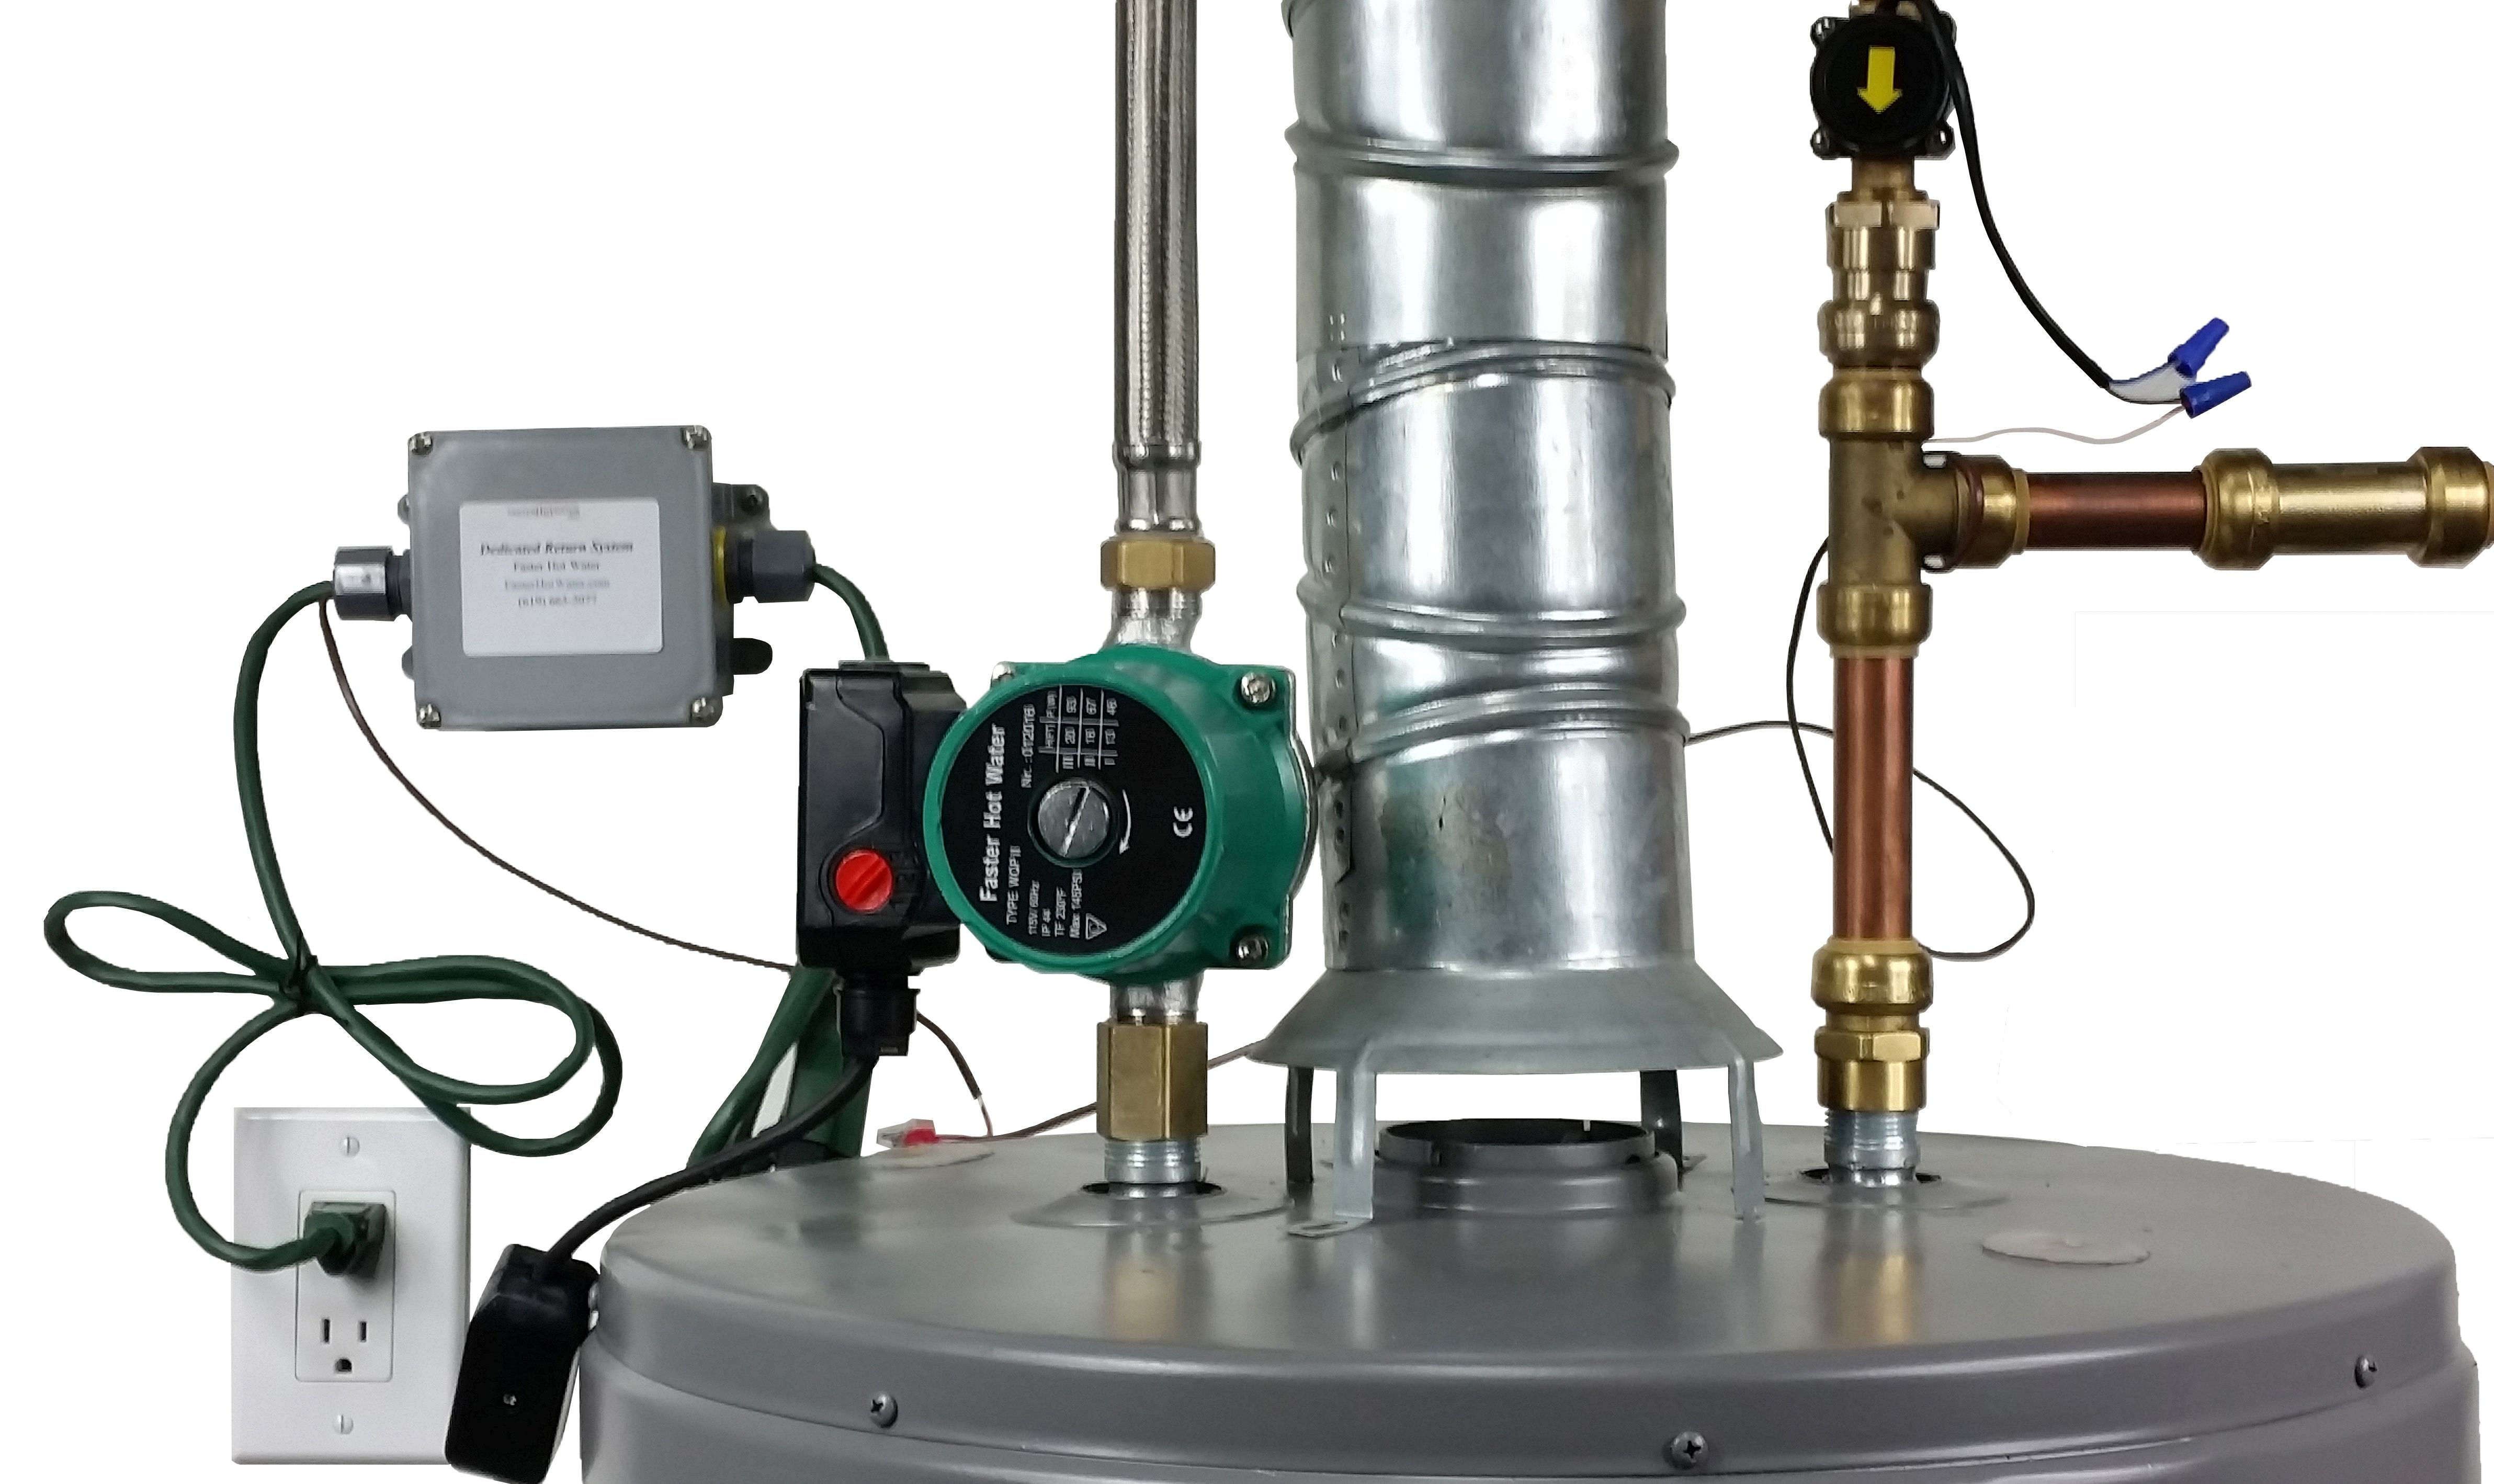 Image of a tank water heater